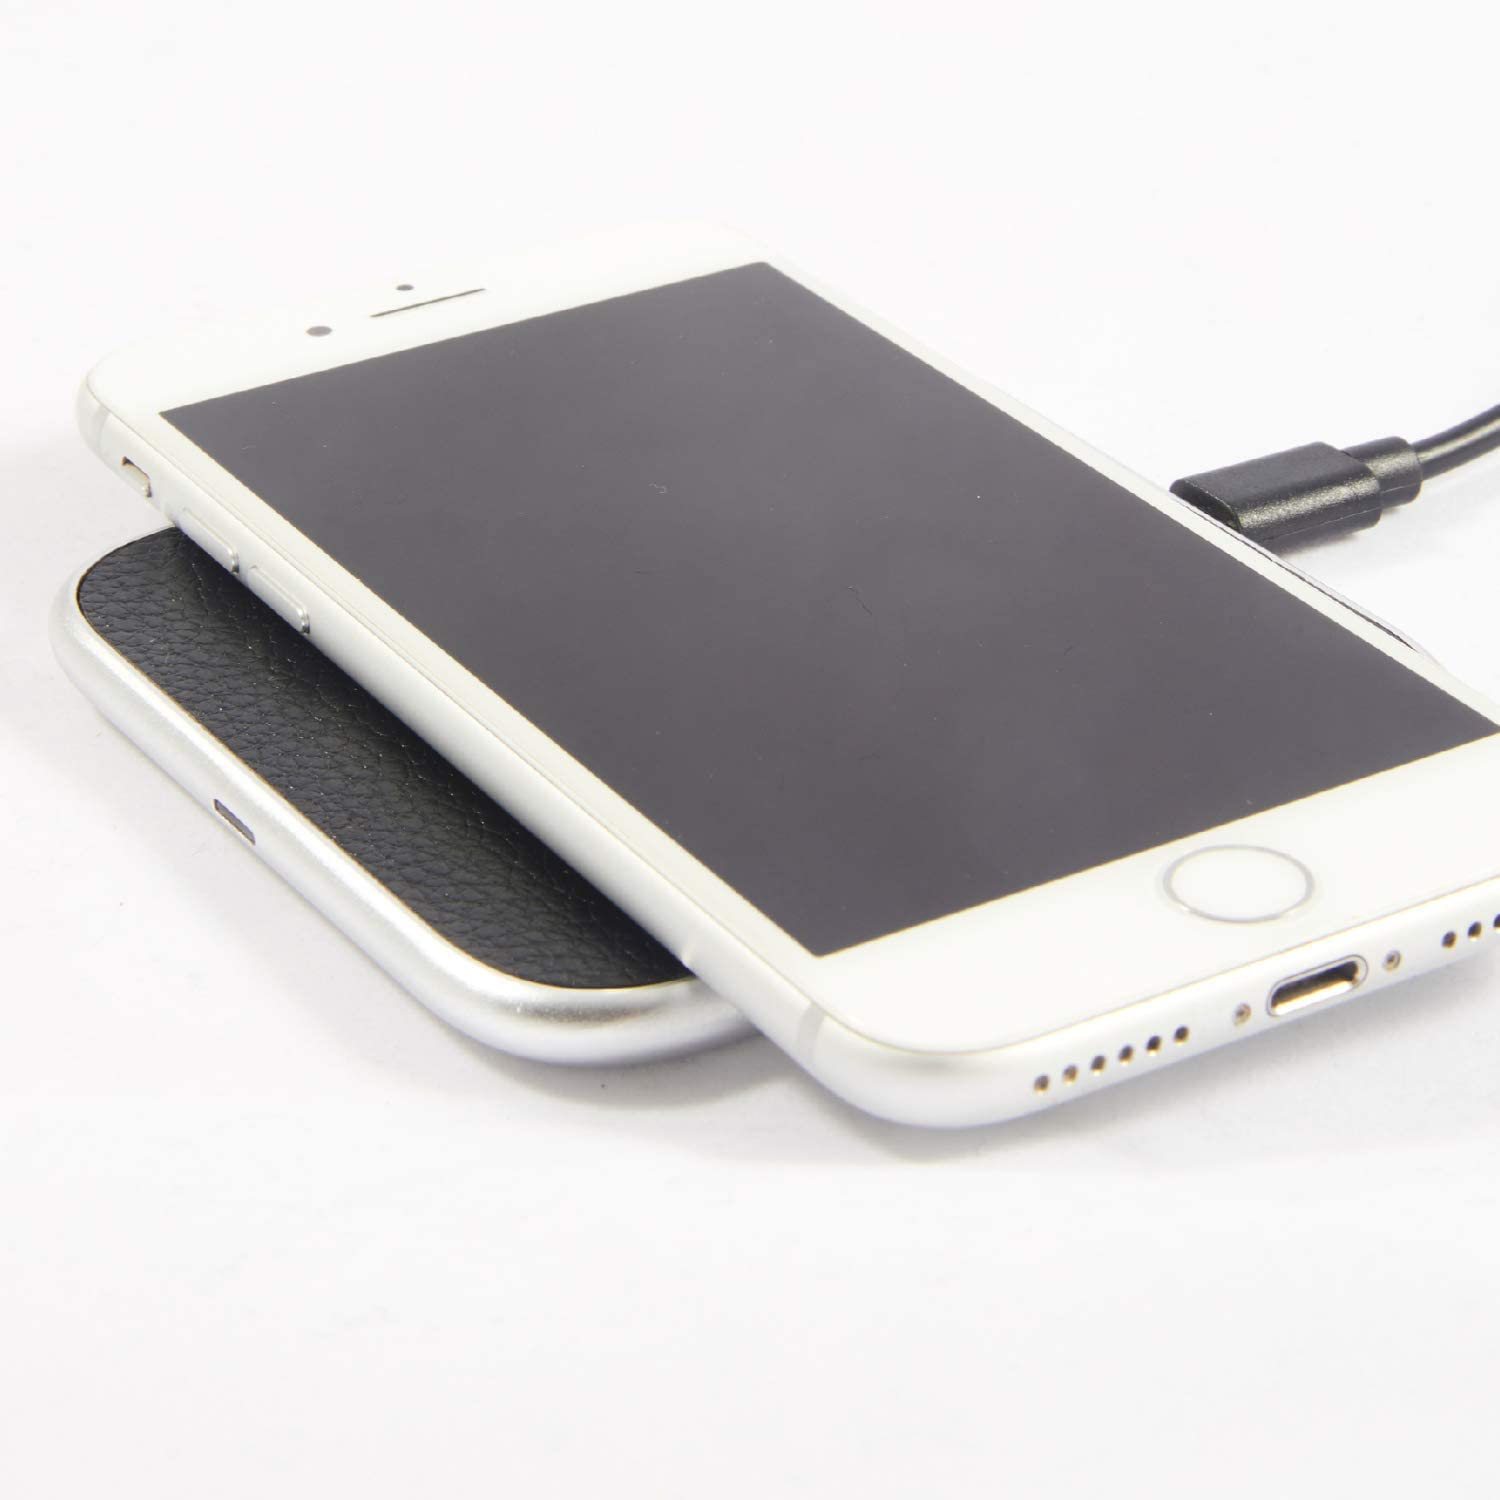 Square Wireless Charging Pad